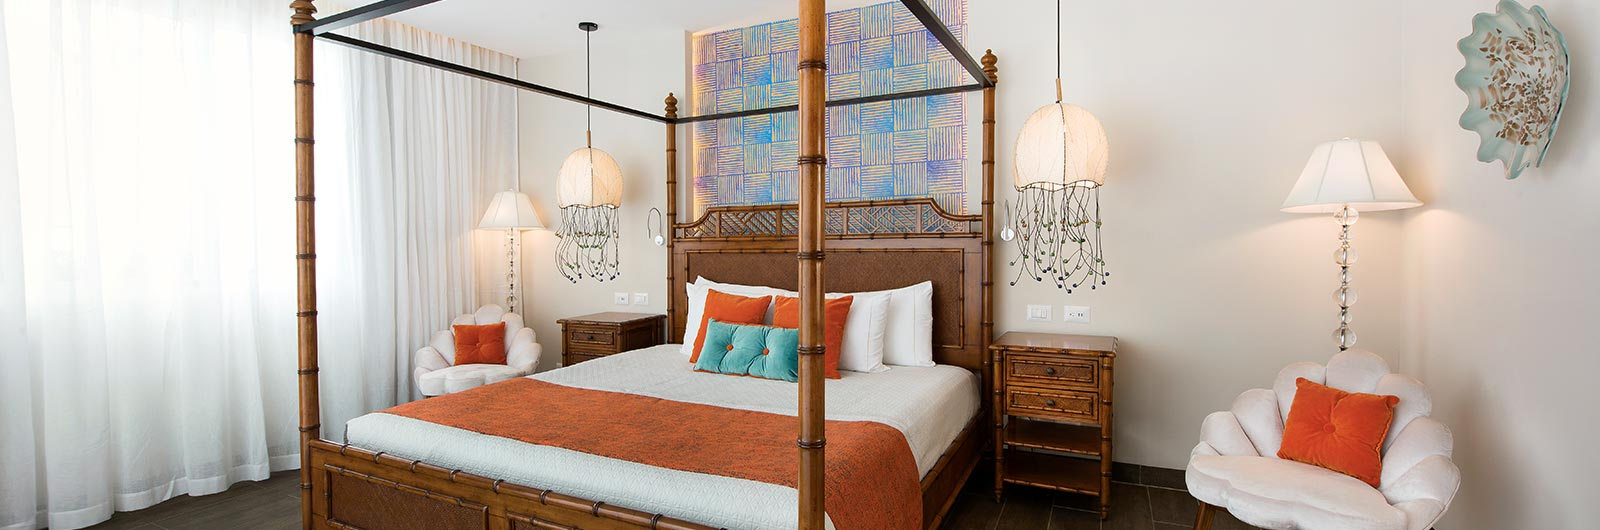 accomodations-page_pineapple_master_bedroom_nhpc_1600x530